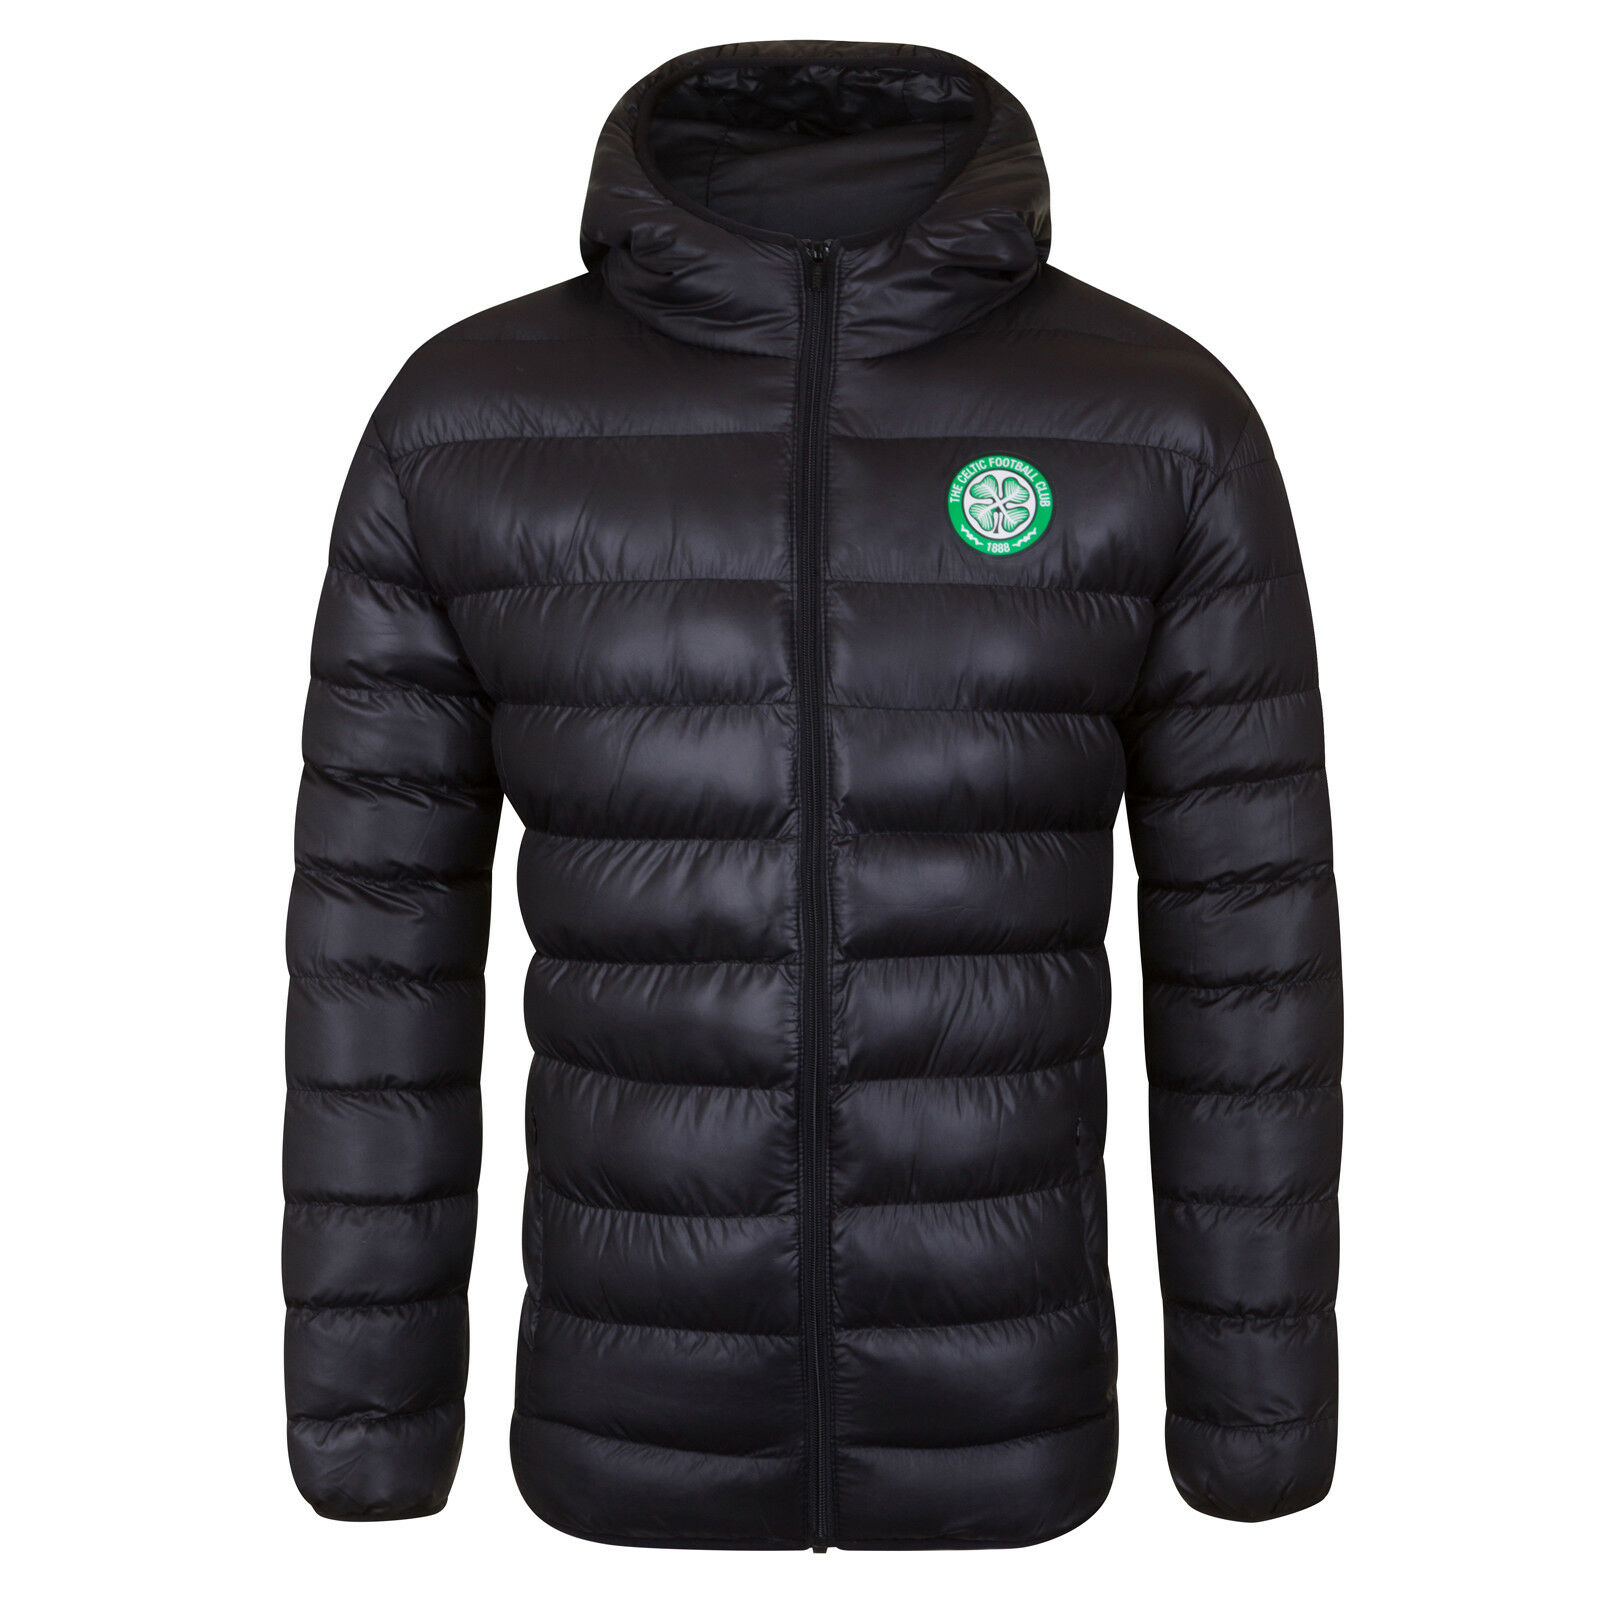 Celtic FC - Herren Winter-Steppjacke mit Kapuze - Offizielles Merchandise